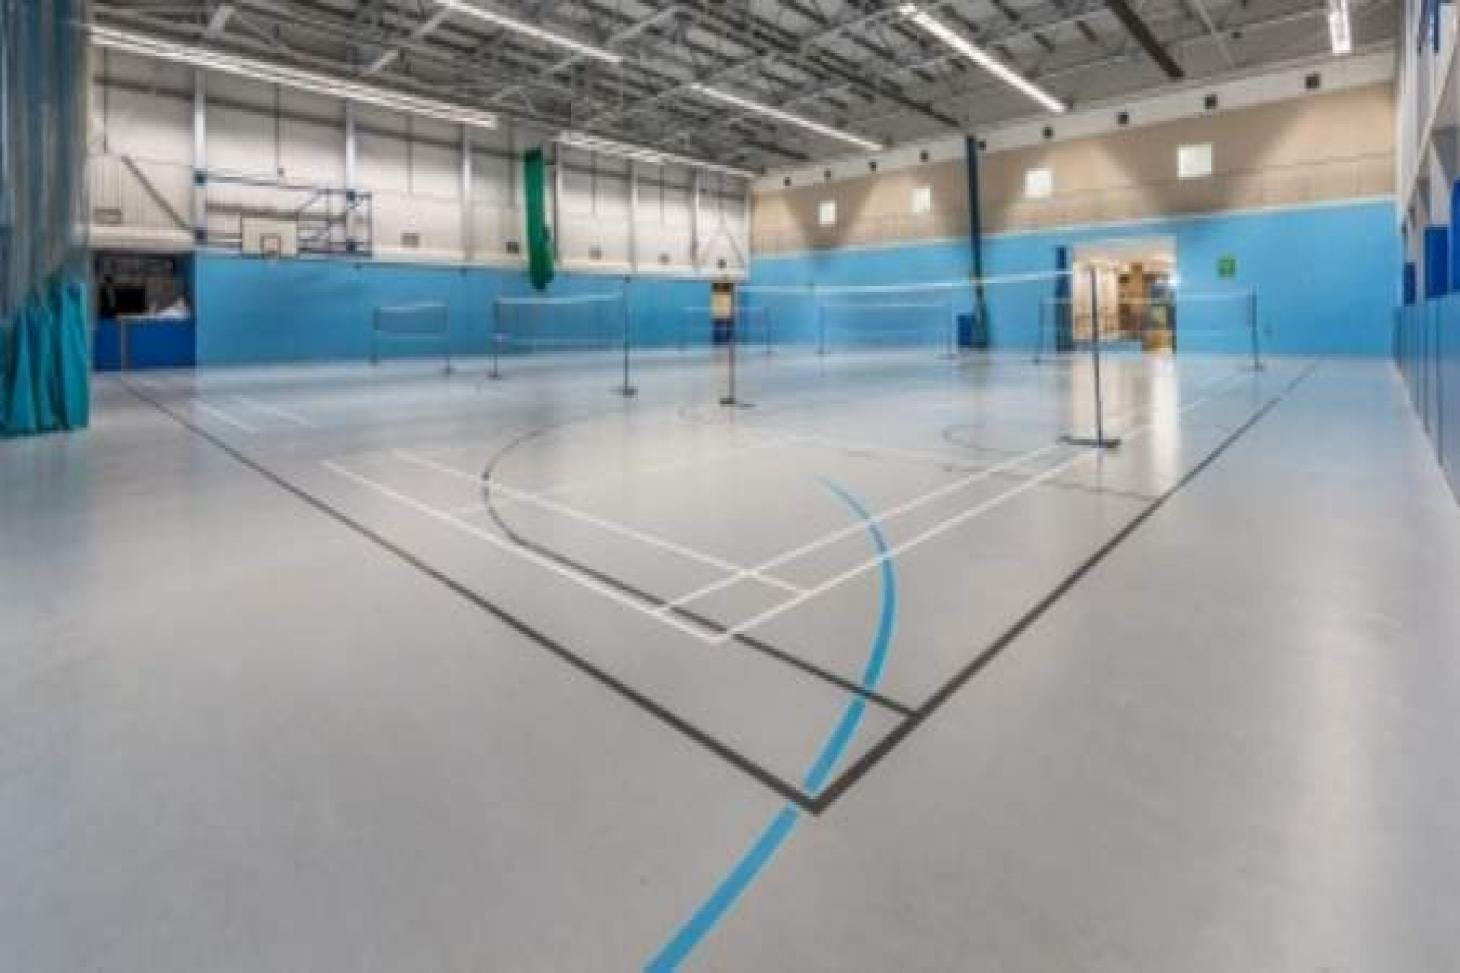 Canons Leisure Centre Indoor | Hard badminton court